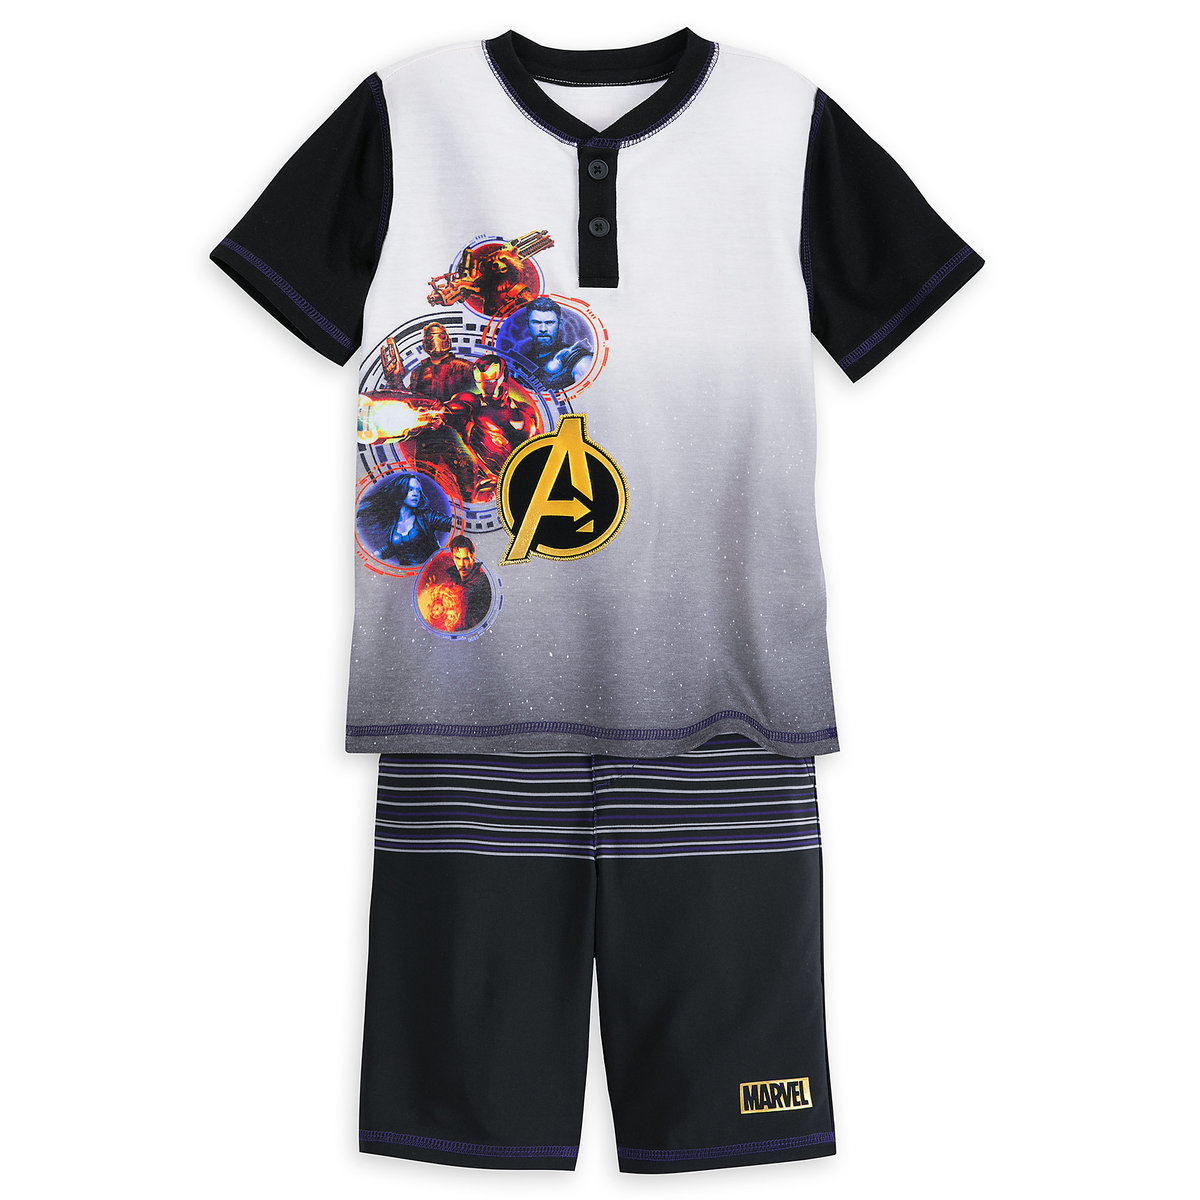 a1b38d5e8 Product Image of Marvel's Avengers: Infinity War T-Shirt and Shorts Set for  Boys